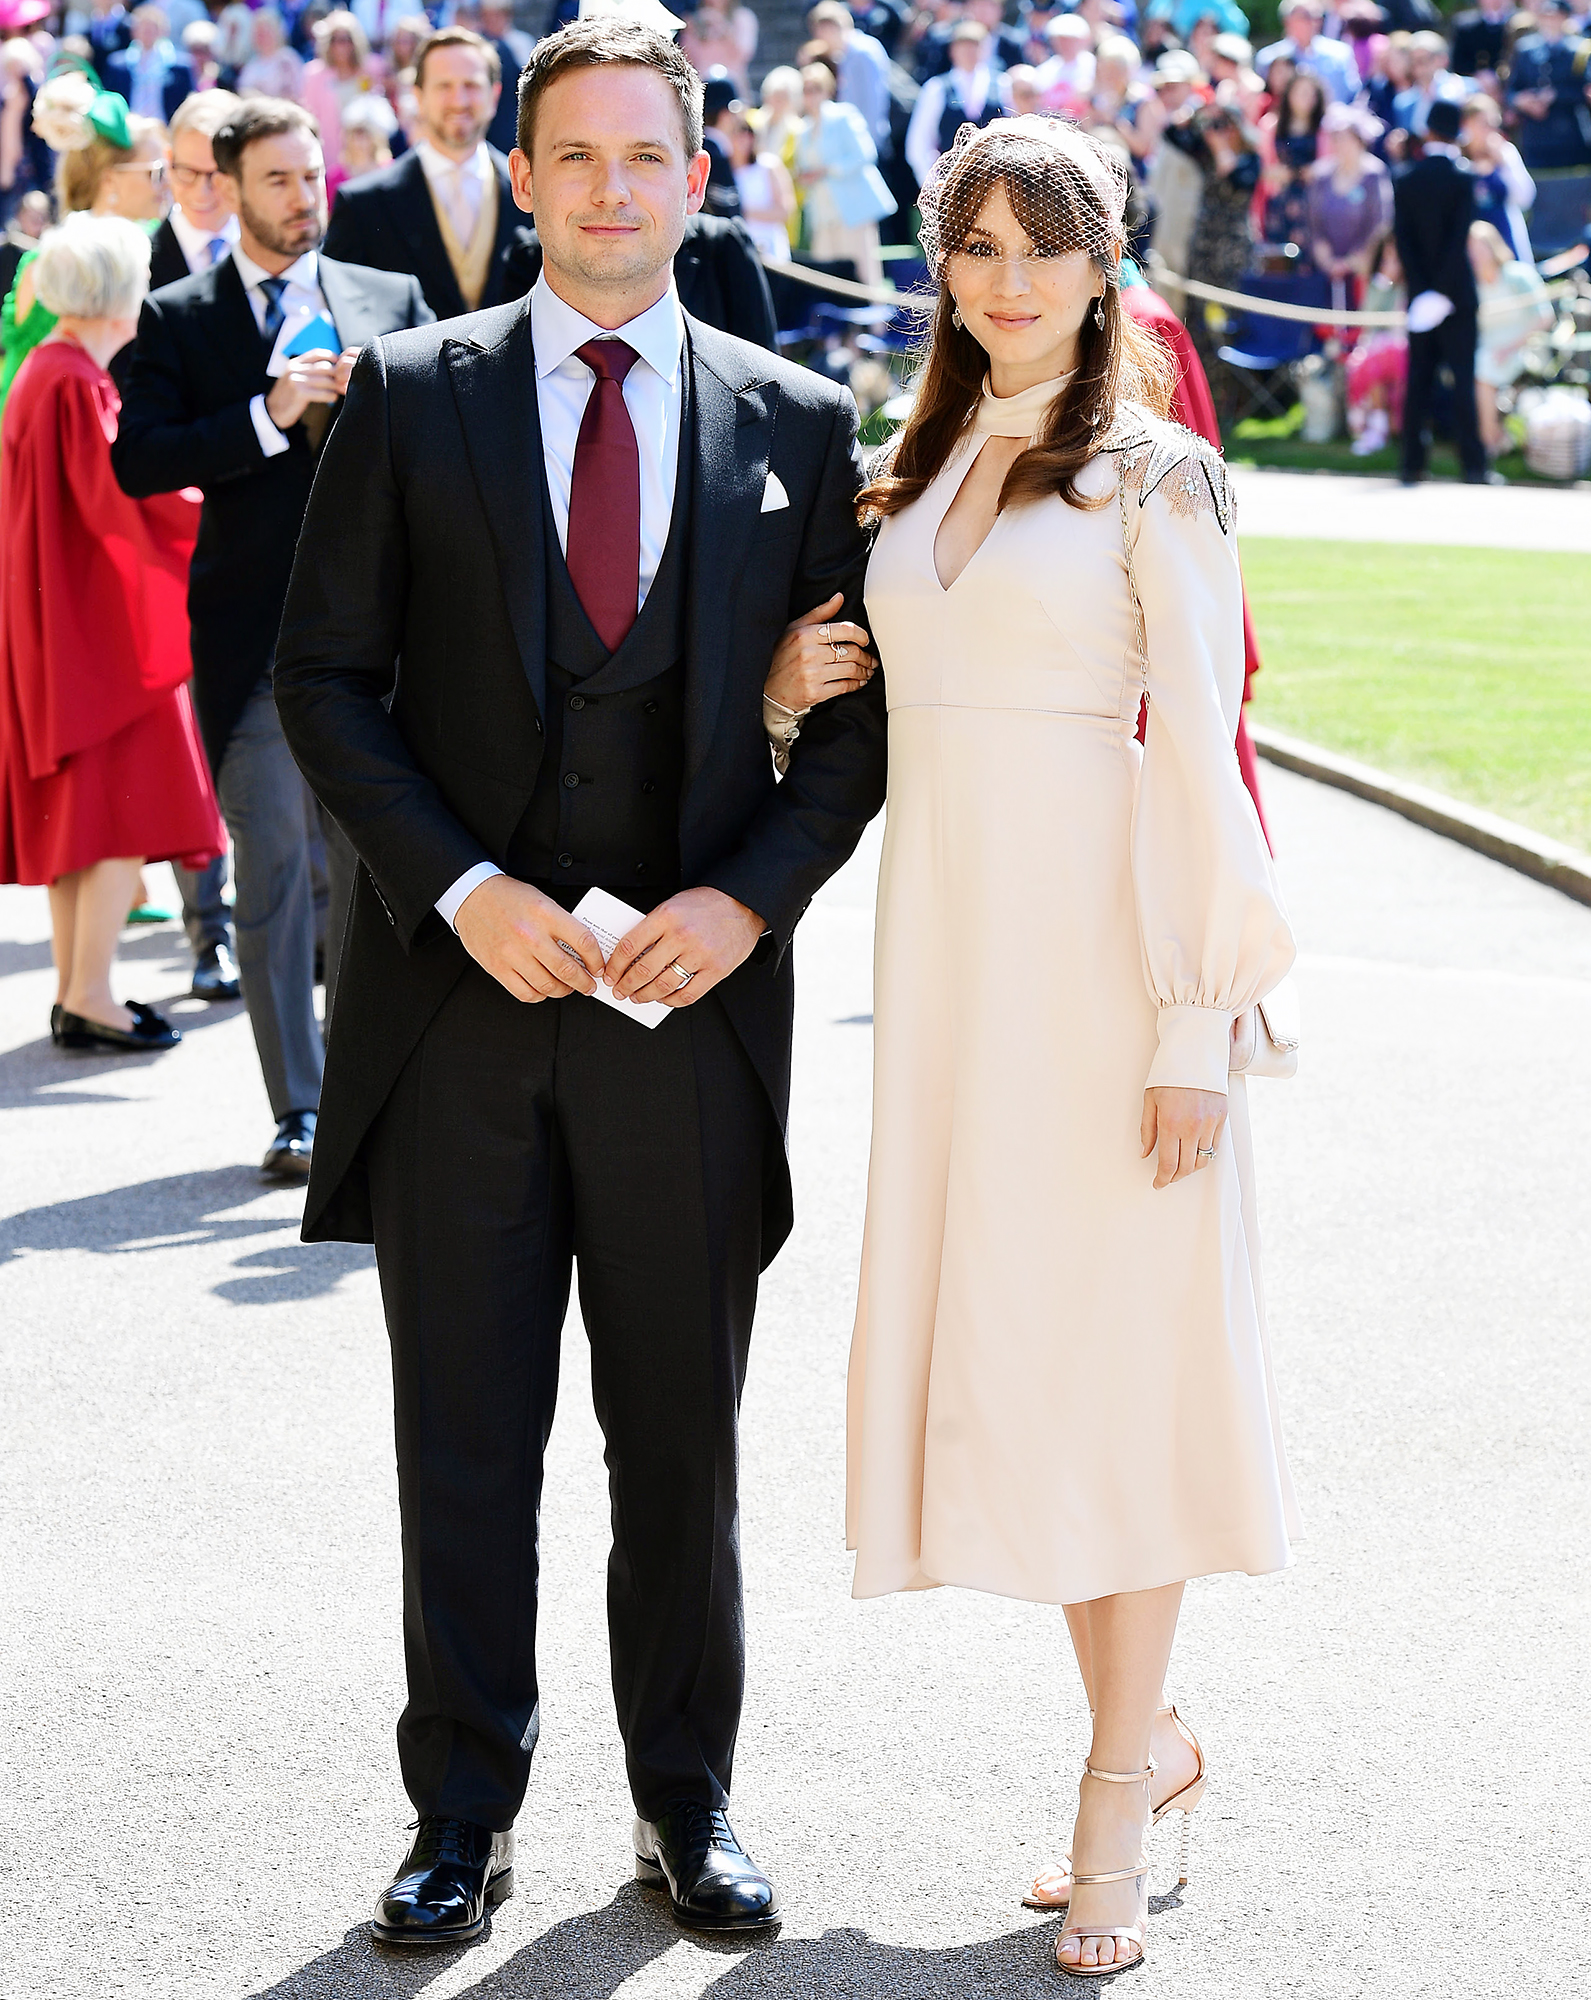 Tom Hardy Royal Wedding.Royal Wedding 2018 What Prince Harry Meghan Markle Guests Wore